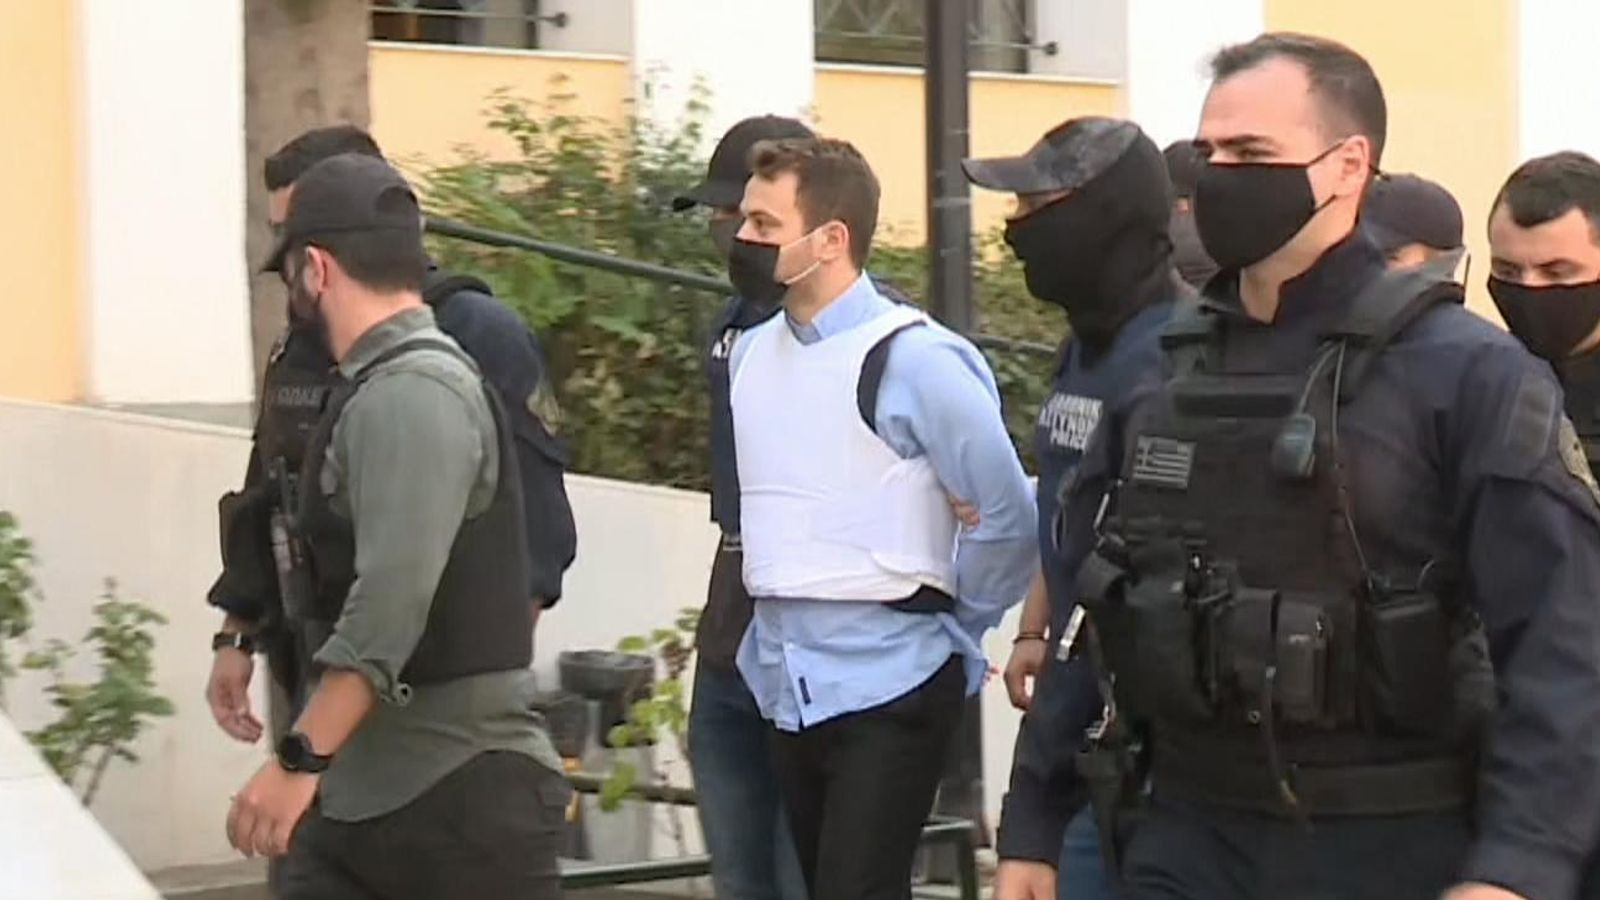 Caroline Crouch death: Pilot accused of murdering British wife arrives at Greek court with armed police escort